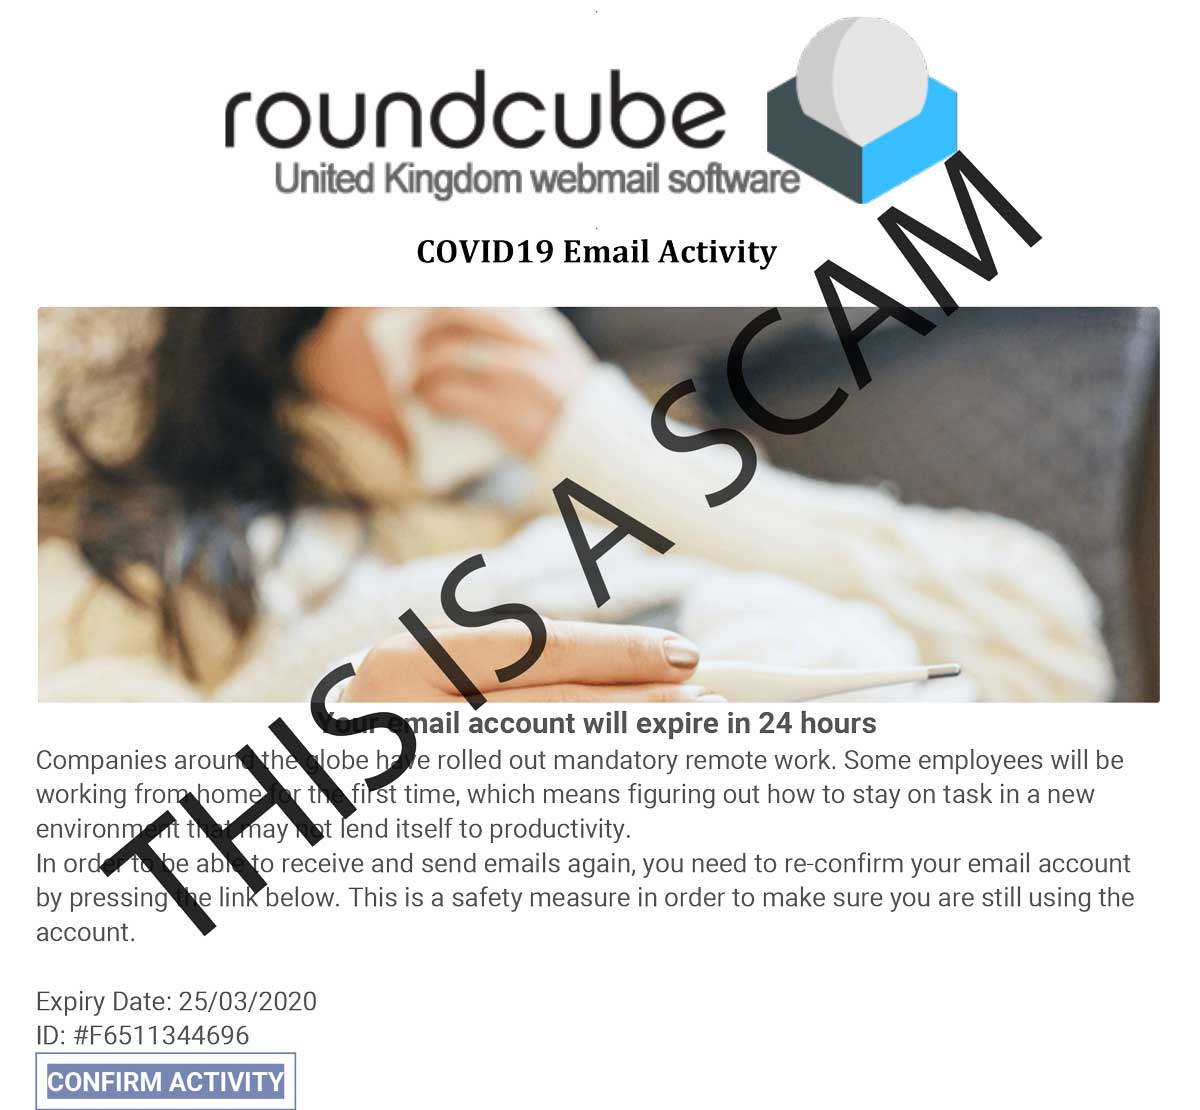 be aware of scam corvid 19 emails